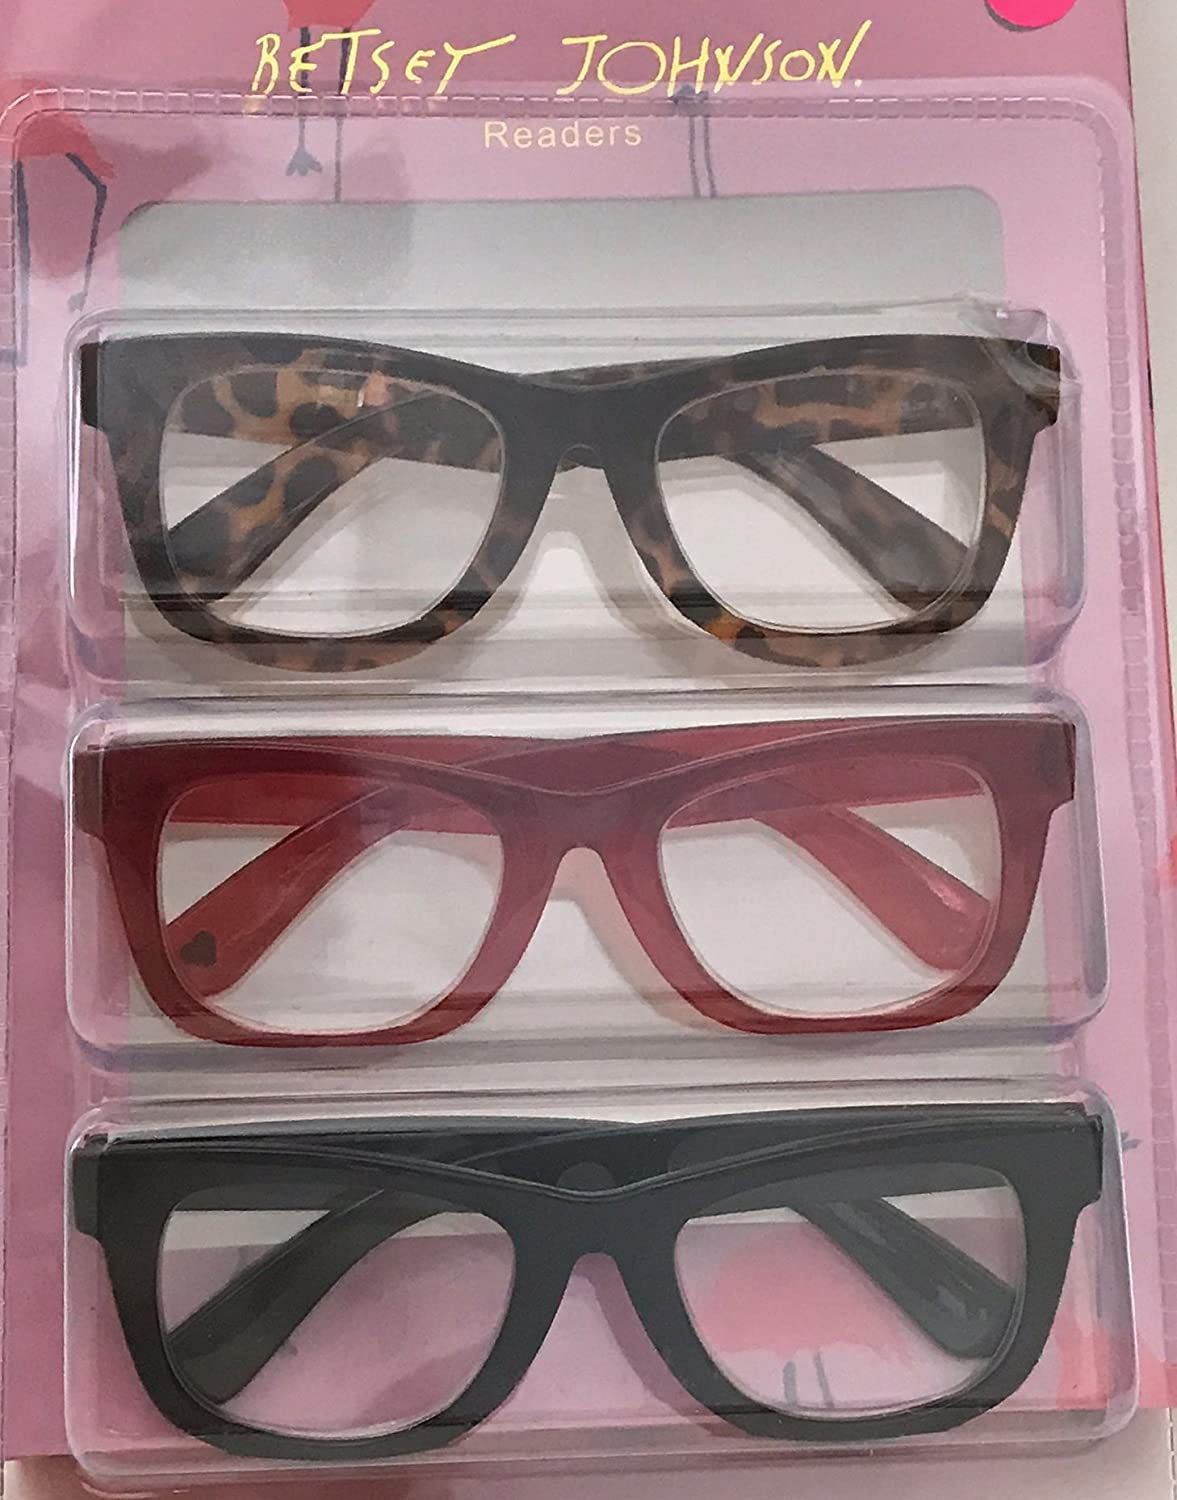 33f61ffa49a Amazon.com  Betsey Johnson Red Animal Print Reading Glasses 3 Pack Readers  (+1.50 Strength)  Health   Personal Care